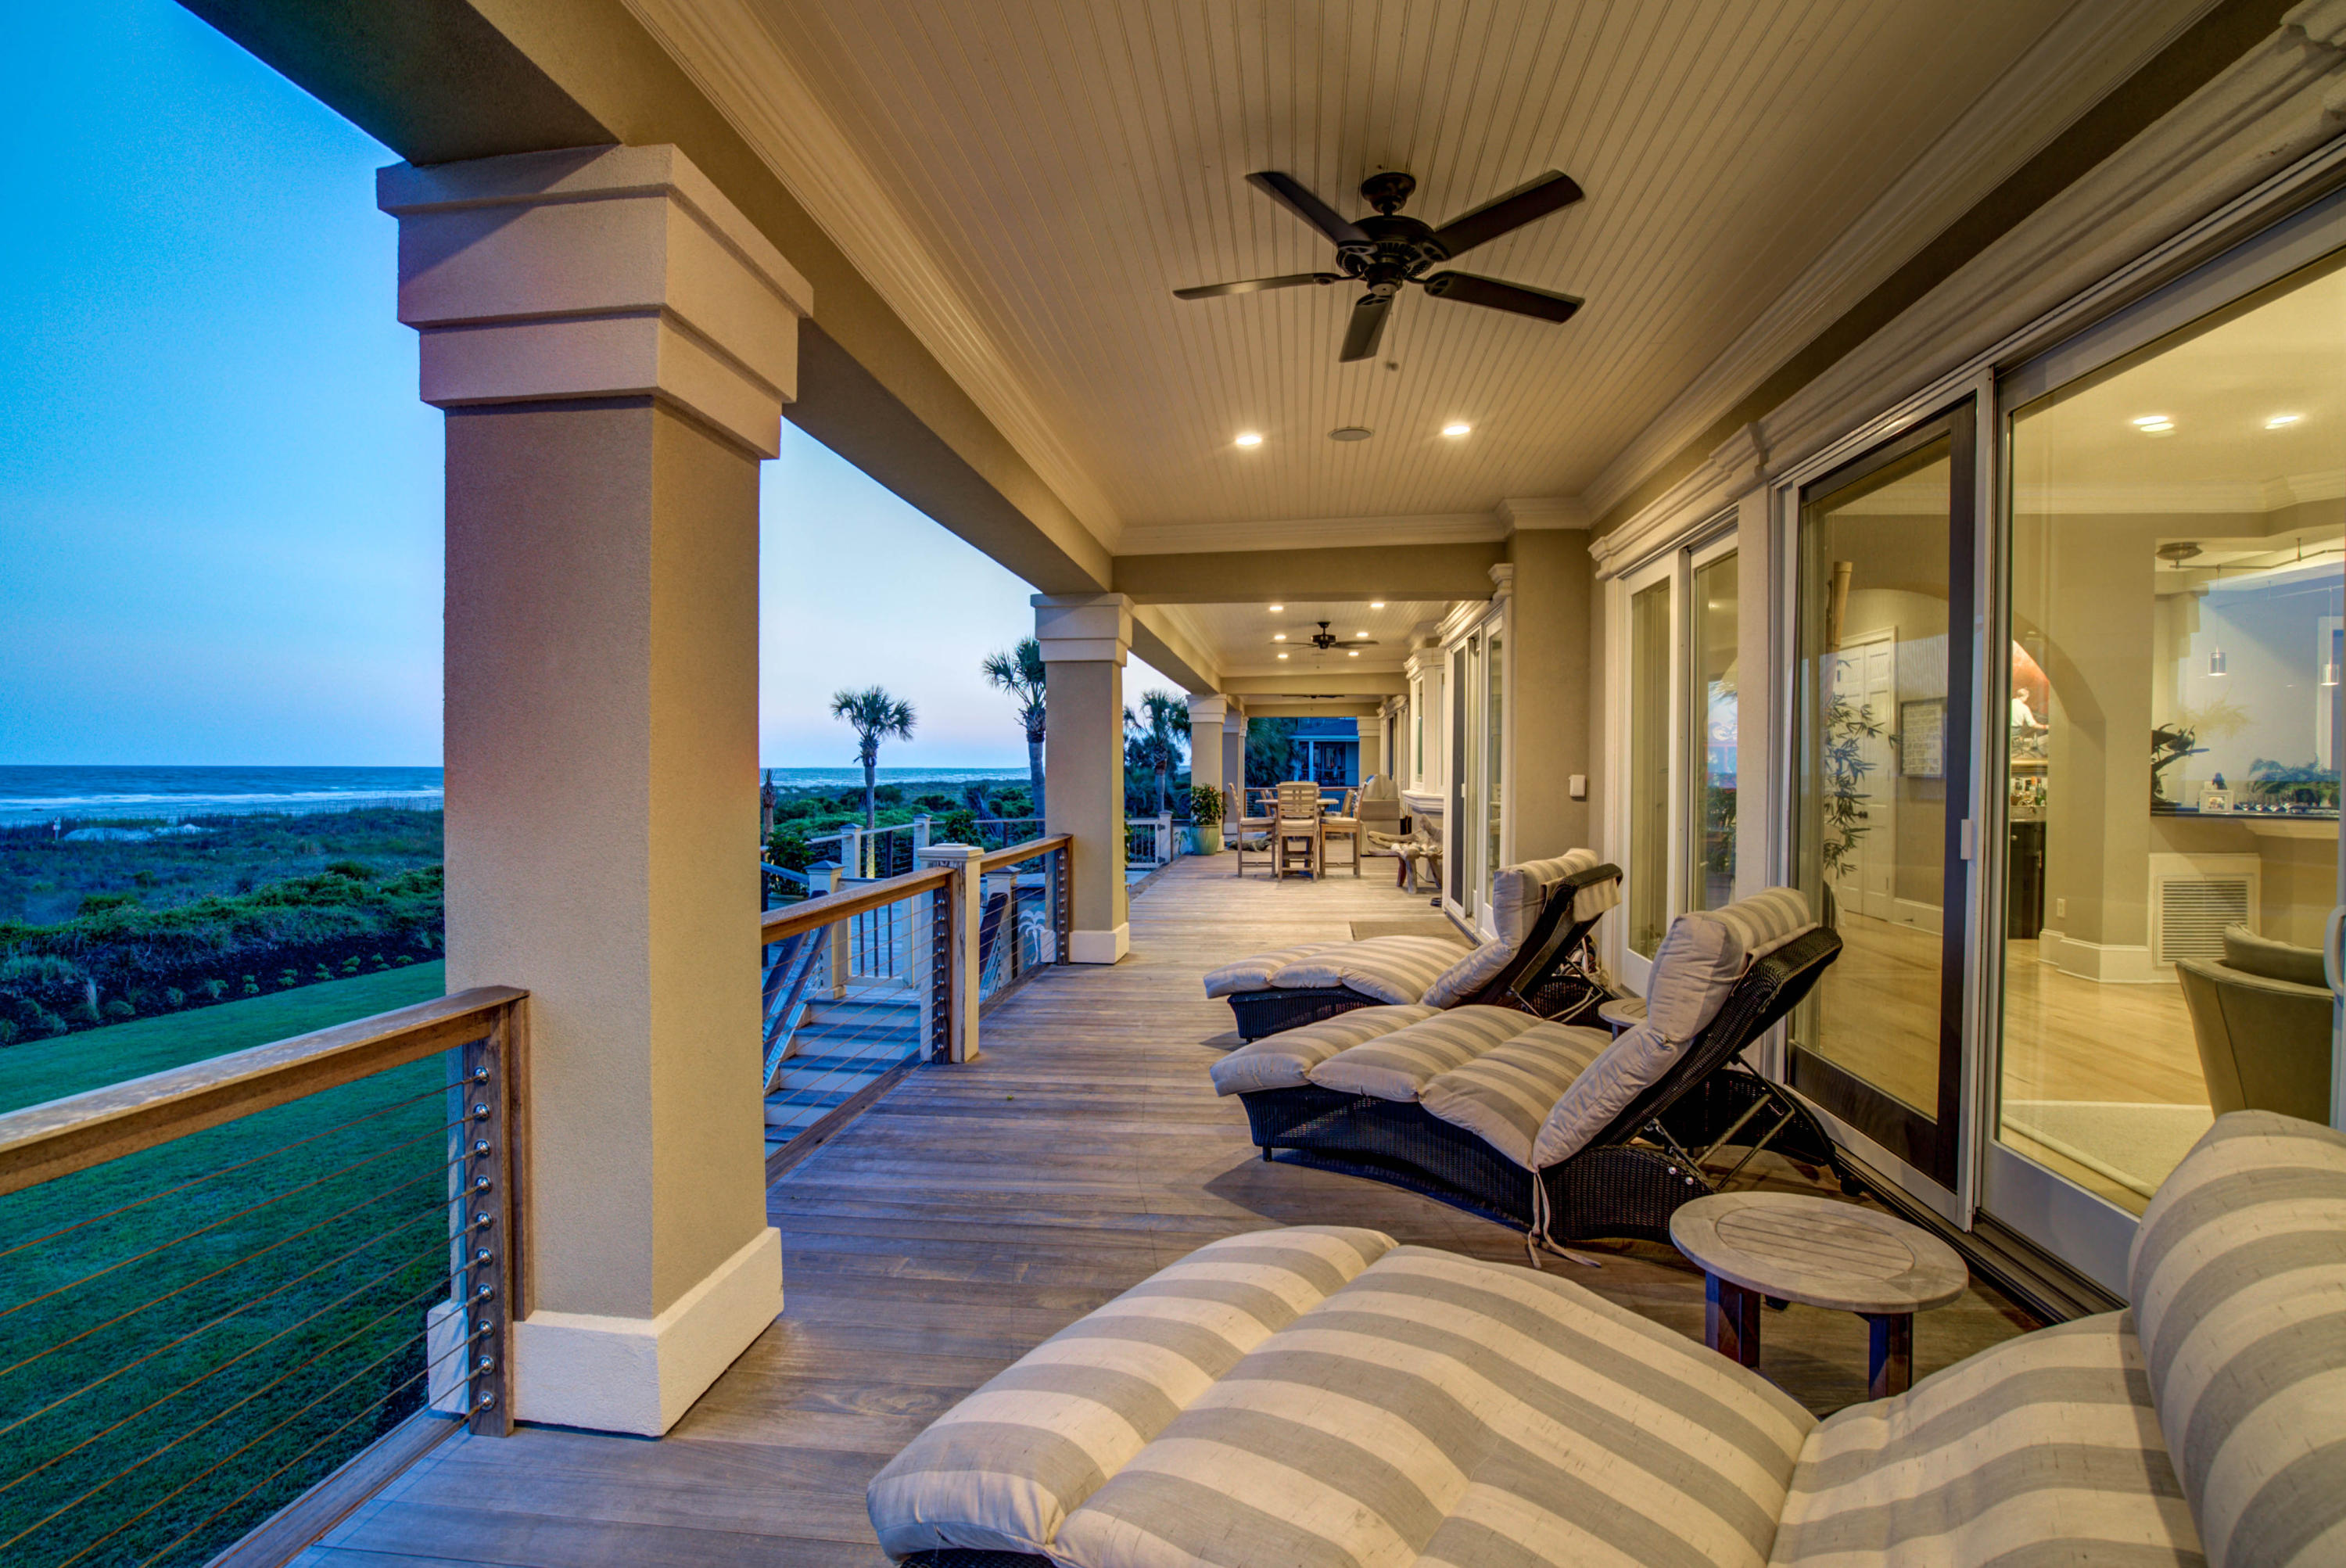 Isle of Palms Homes For Sale - 2 50th, Isle of Palms, SC - 21